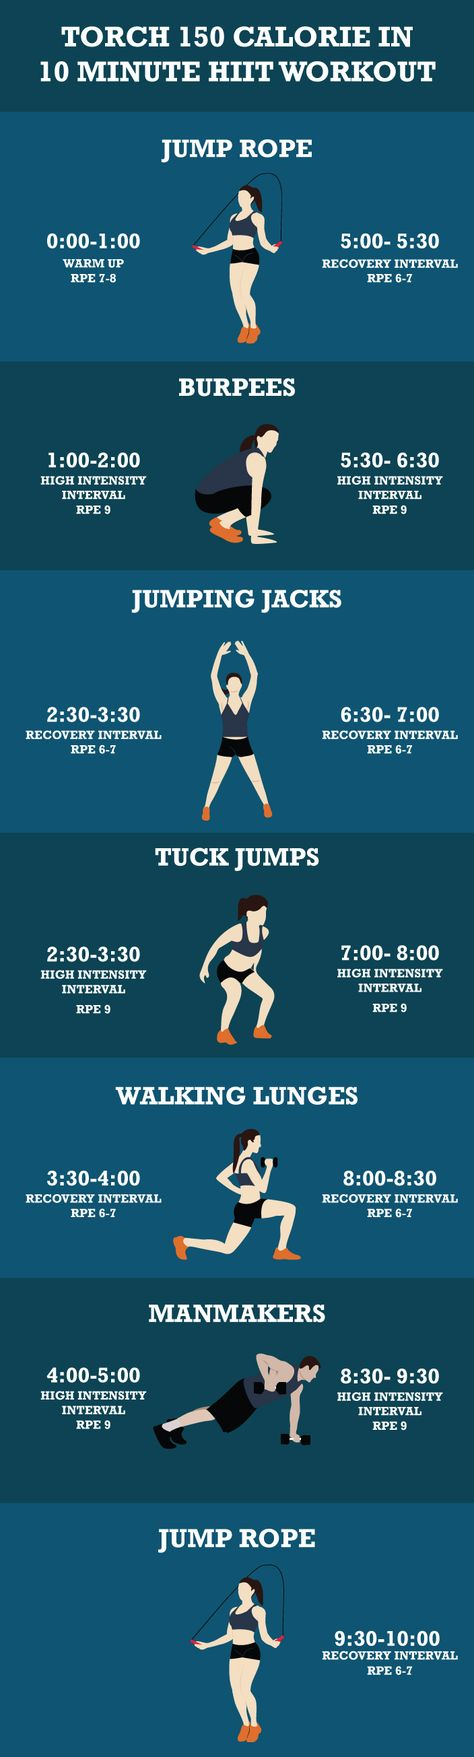 HIIT Workout To Torch 150 Calories In 10 Minutes   Fitness Republic